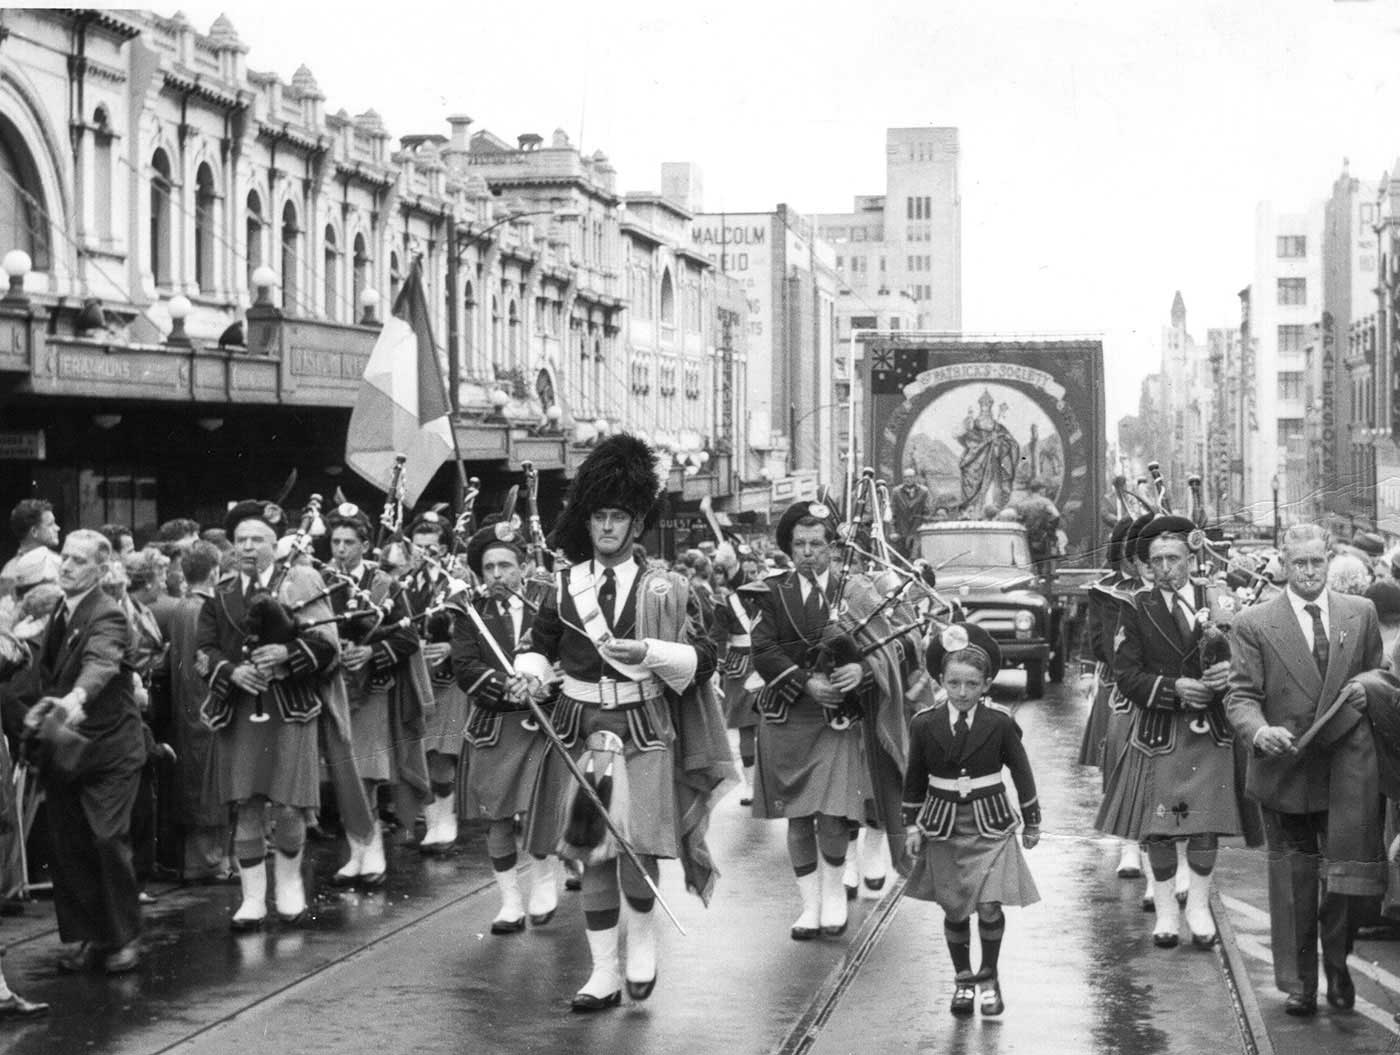 Black and white photo of a procession of bag pipe players walking down a city street with crowds looking on. - click to view larger image